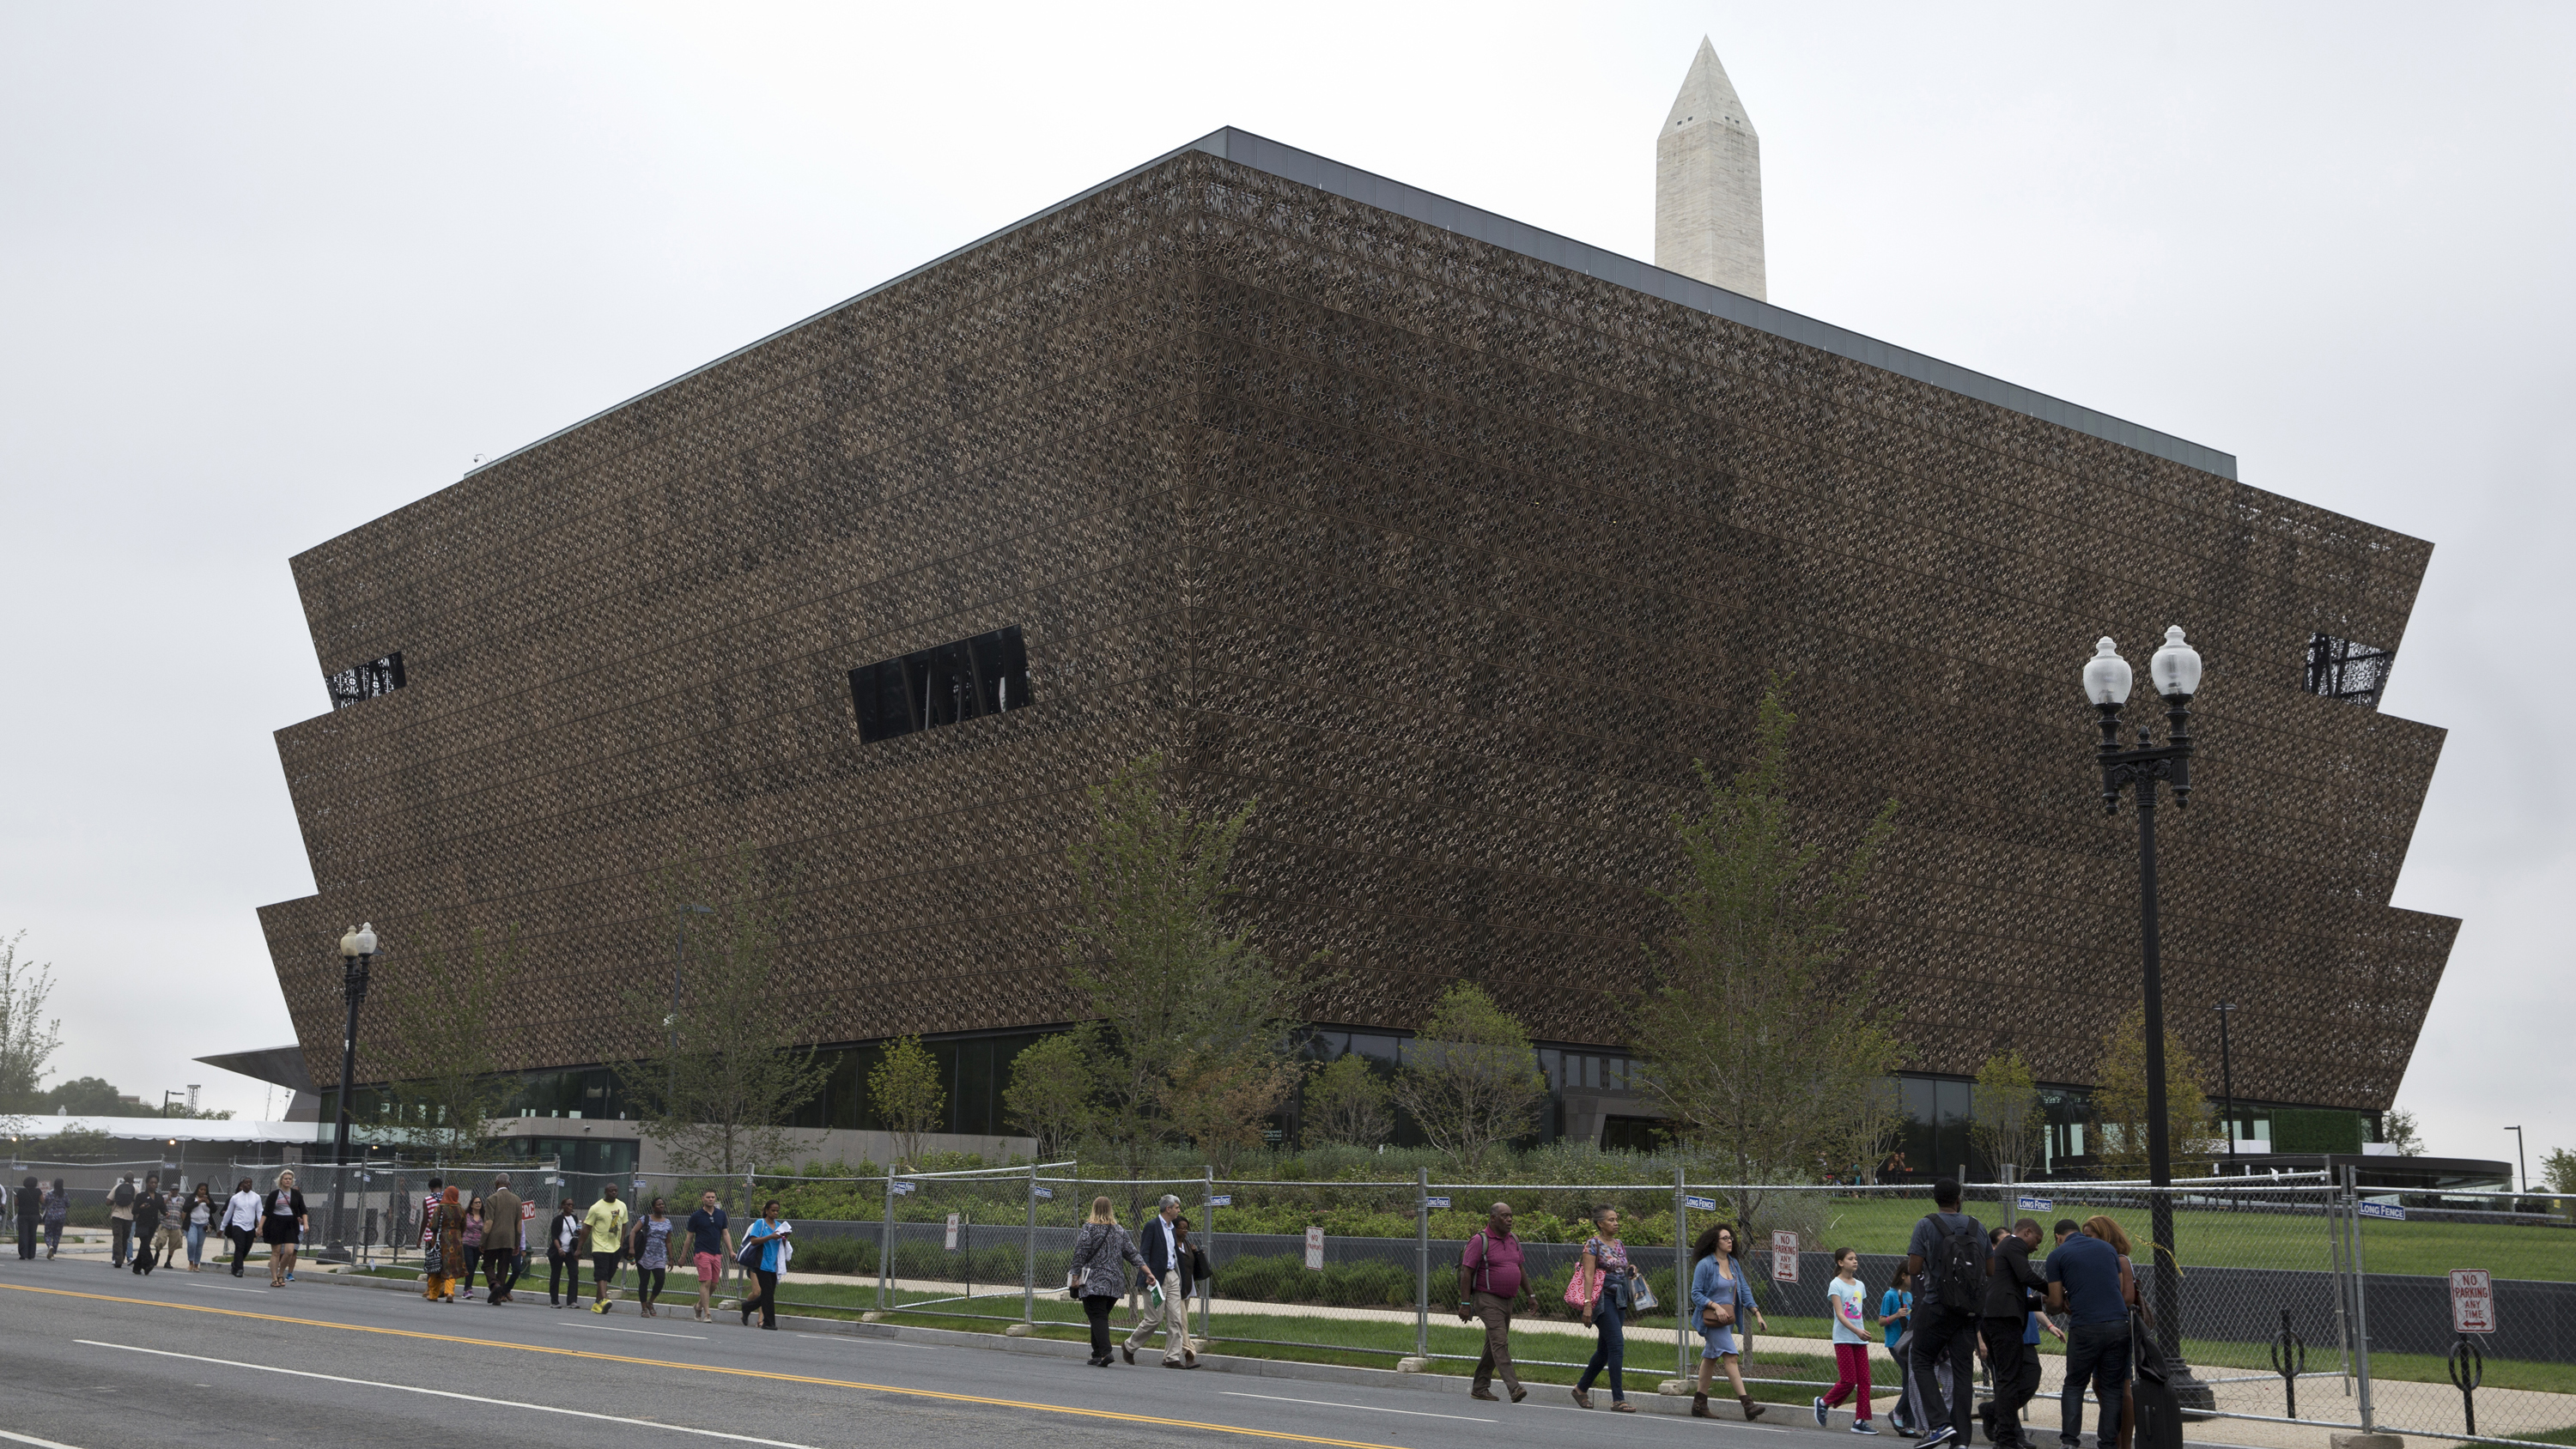 Opening Of The National Museum Of African American History And Culture